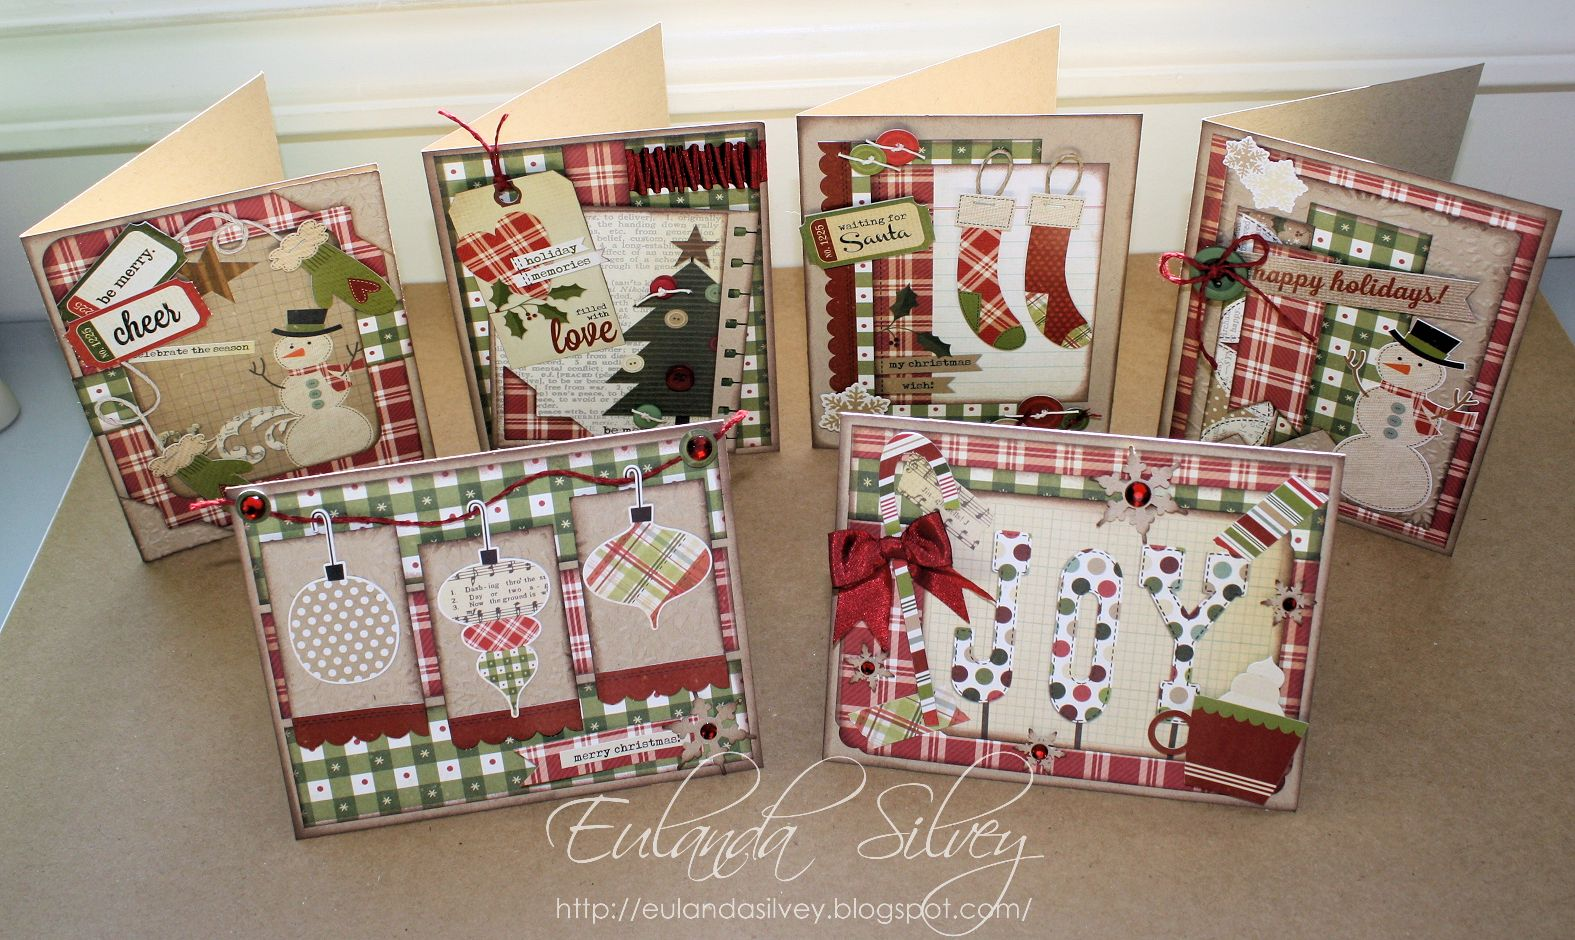 and More Cards: Simple Stories quot;Handmade Holidayquot; Christmas Cards